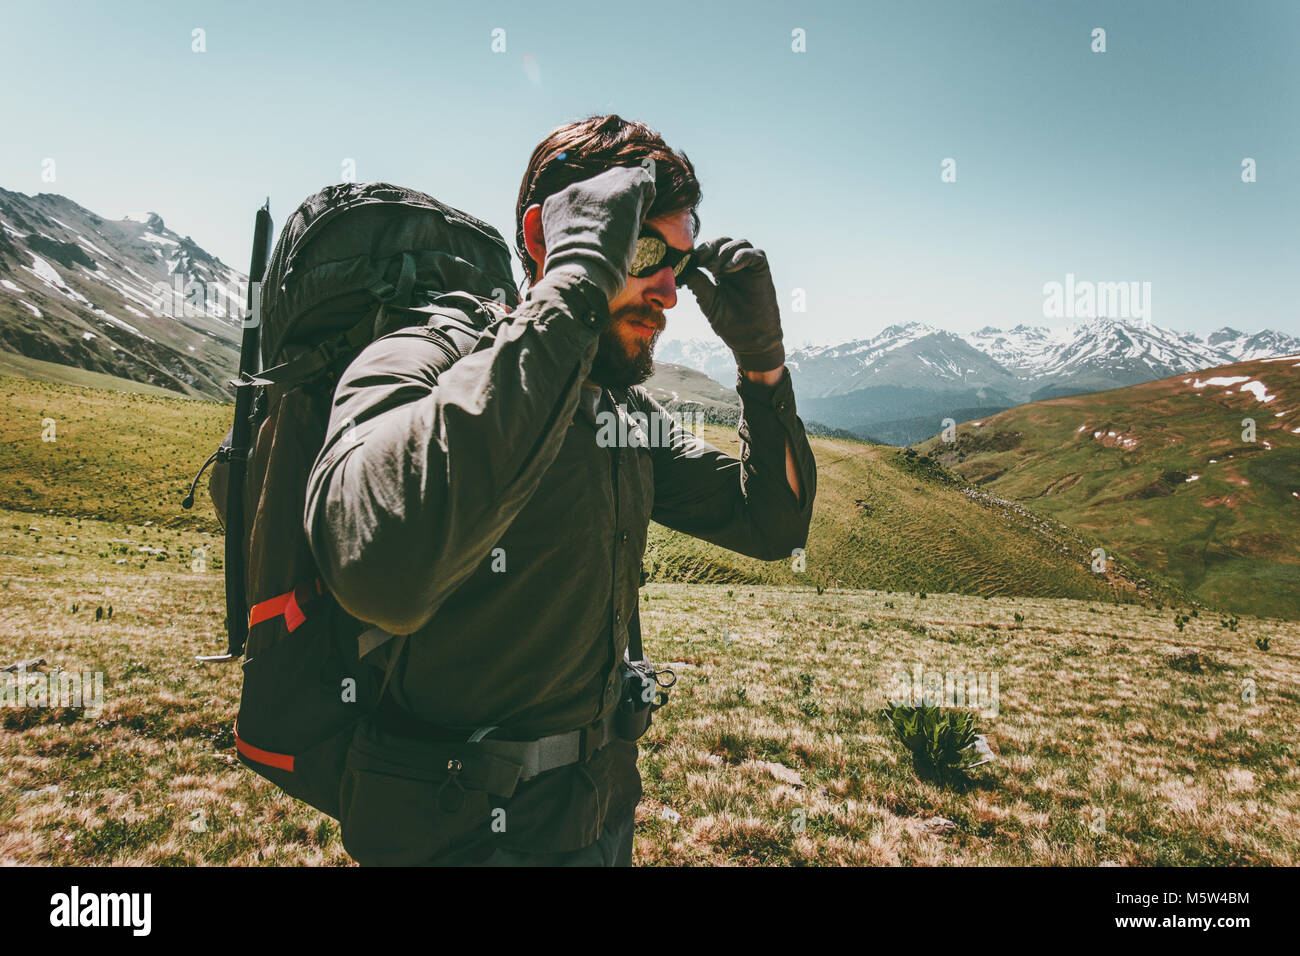 Backpacker Man hiking in mountains  Travel Lifestyle survival concept adventure outdoor active vacations mountaineering - Stock Image